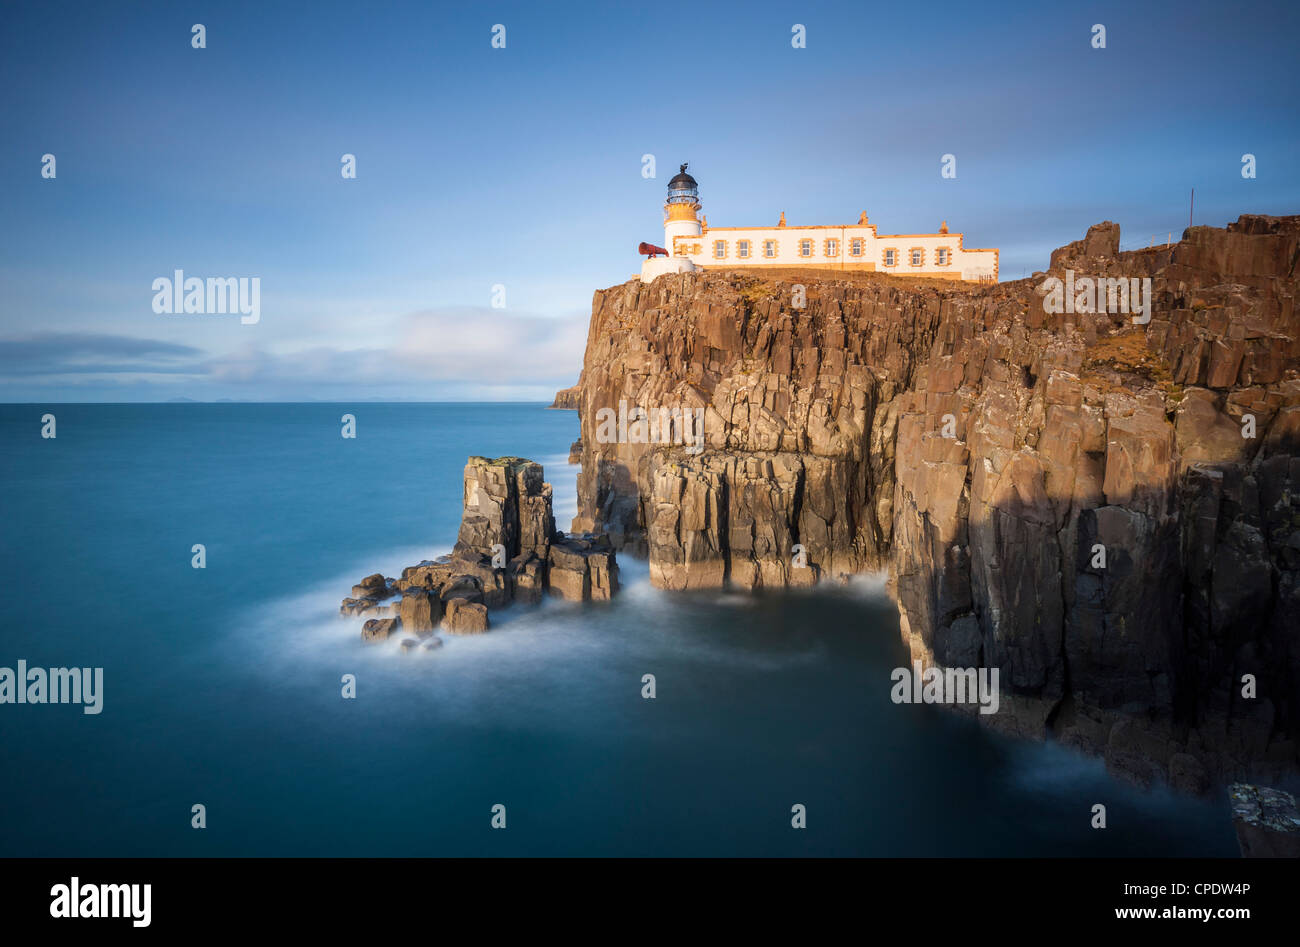 Neist Point lighthouse, Isle of Skye, Scotland, UK Stock Photo